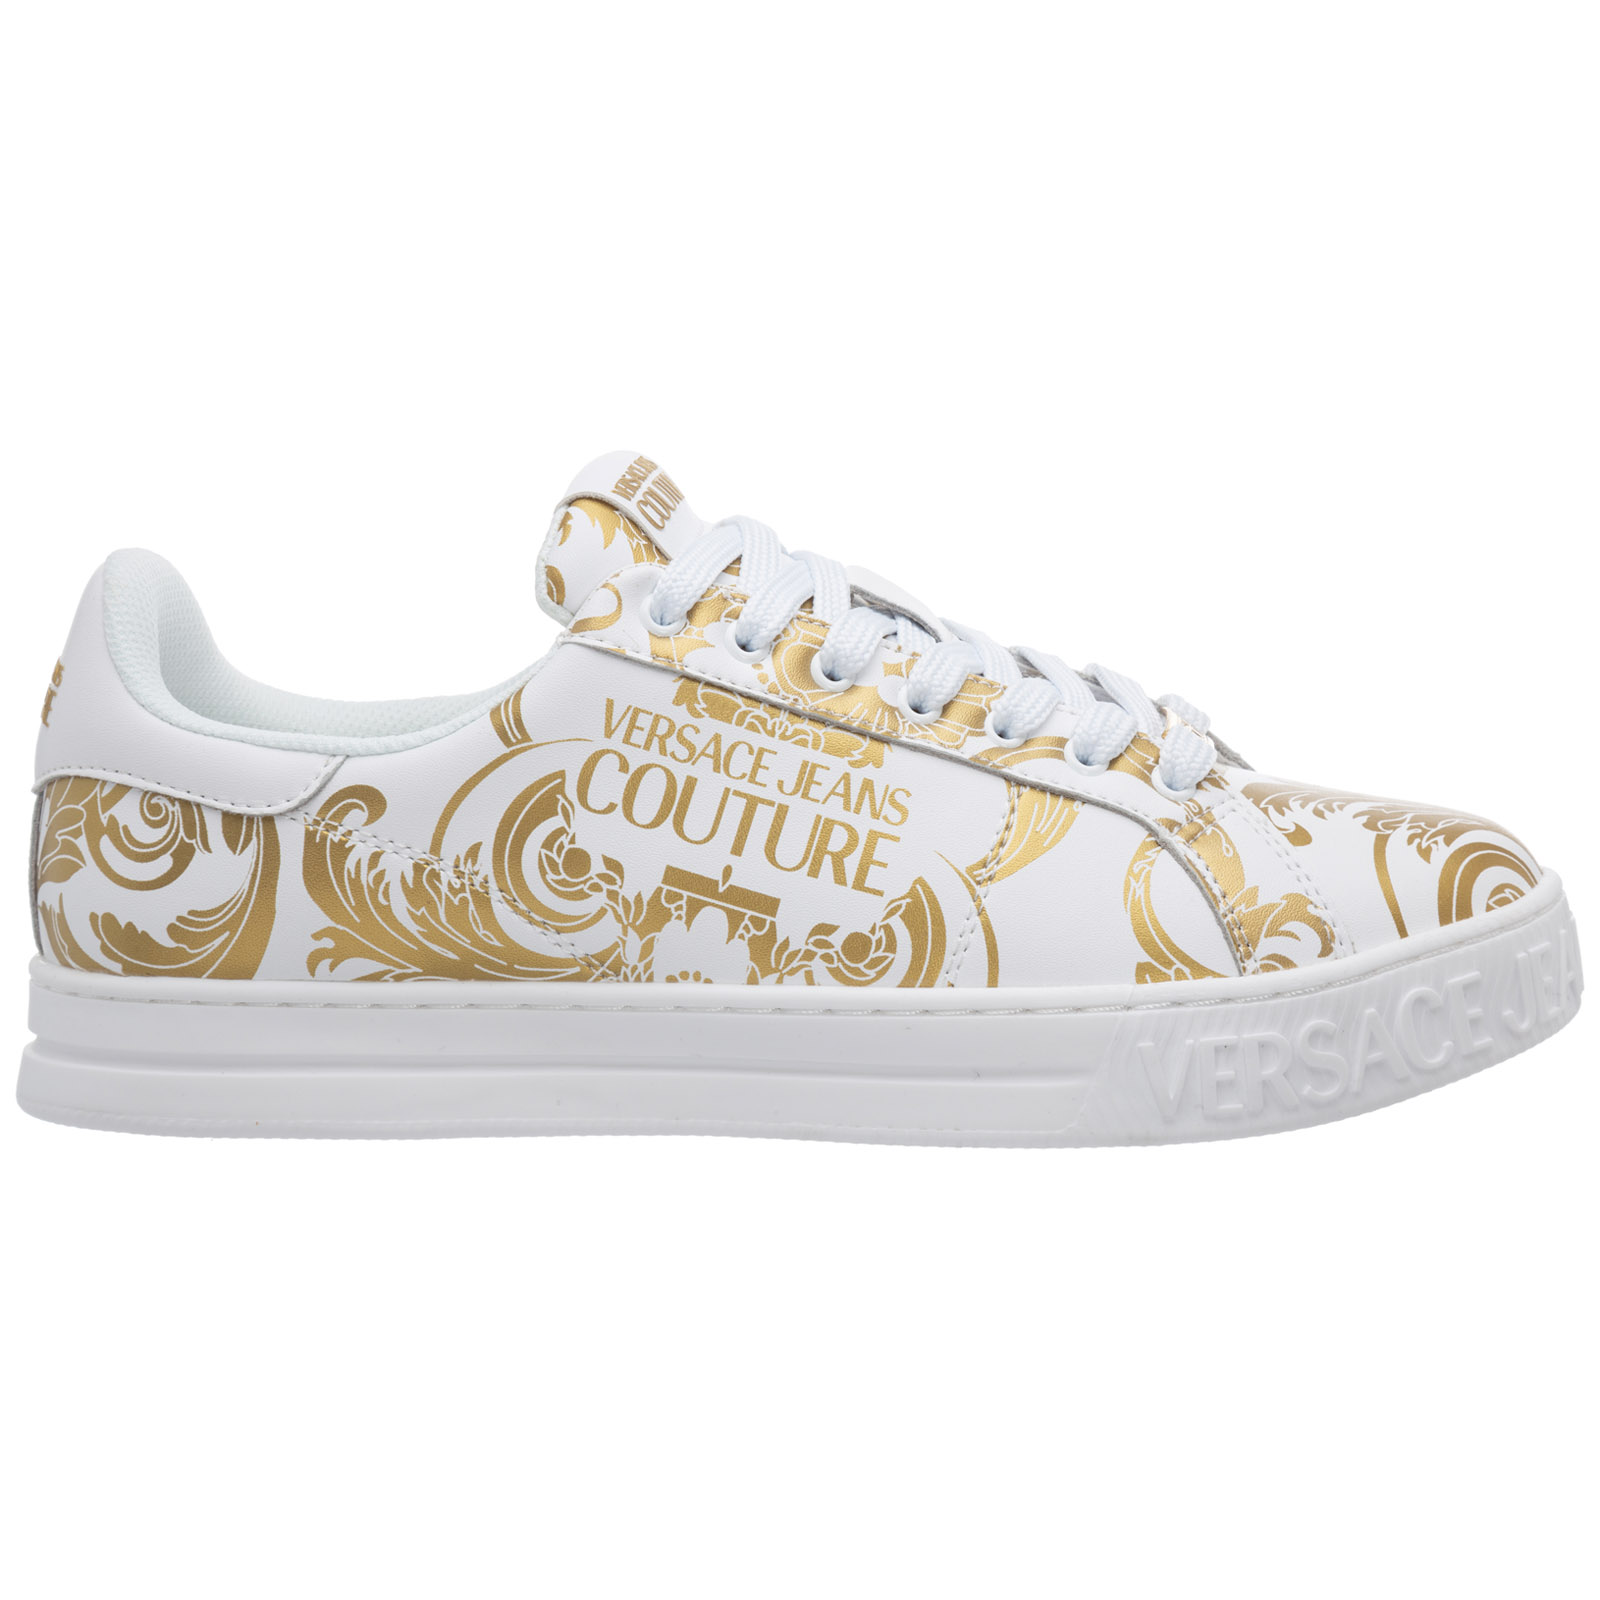 Versace Jeans Couture Sneakers MEN'S SHOES LEATHER TRAINERS SNEAKERS FONDO COURT